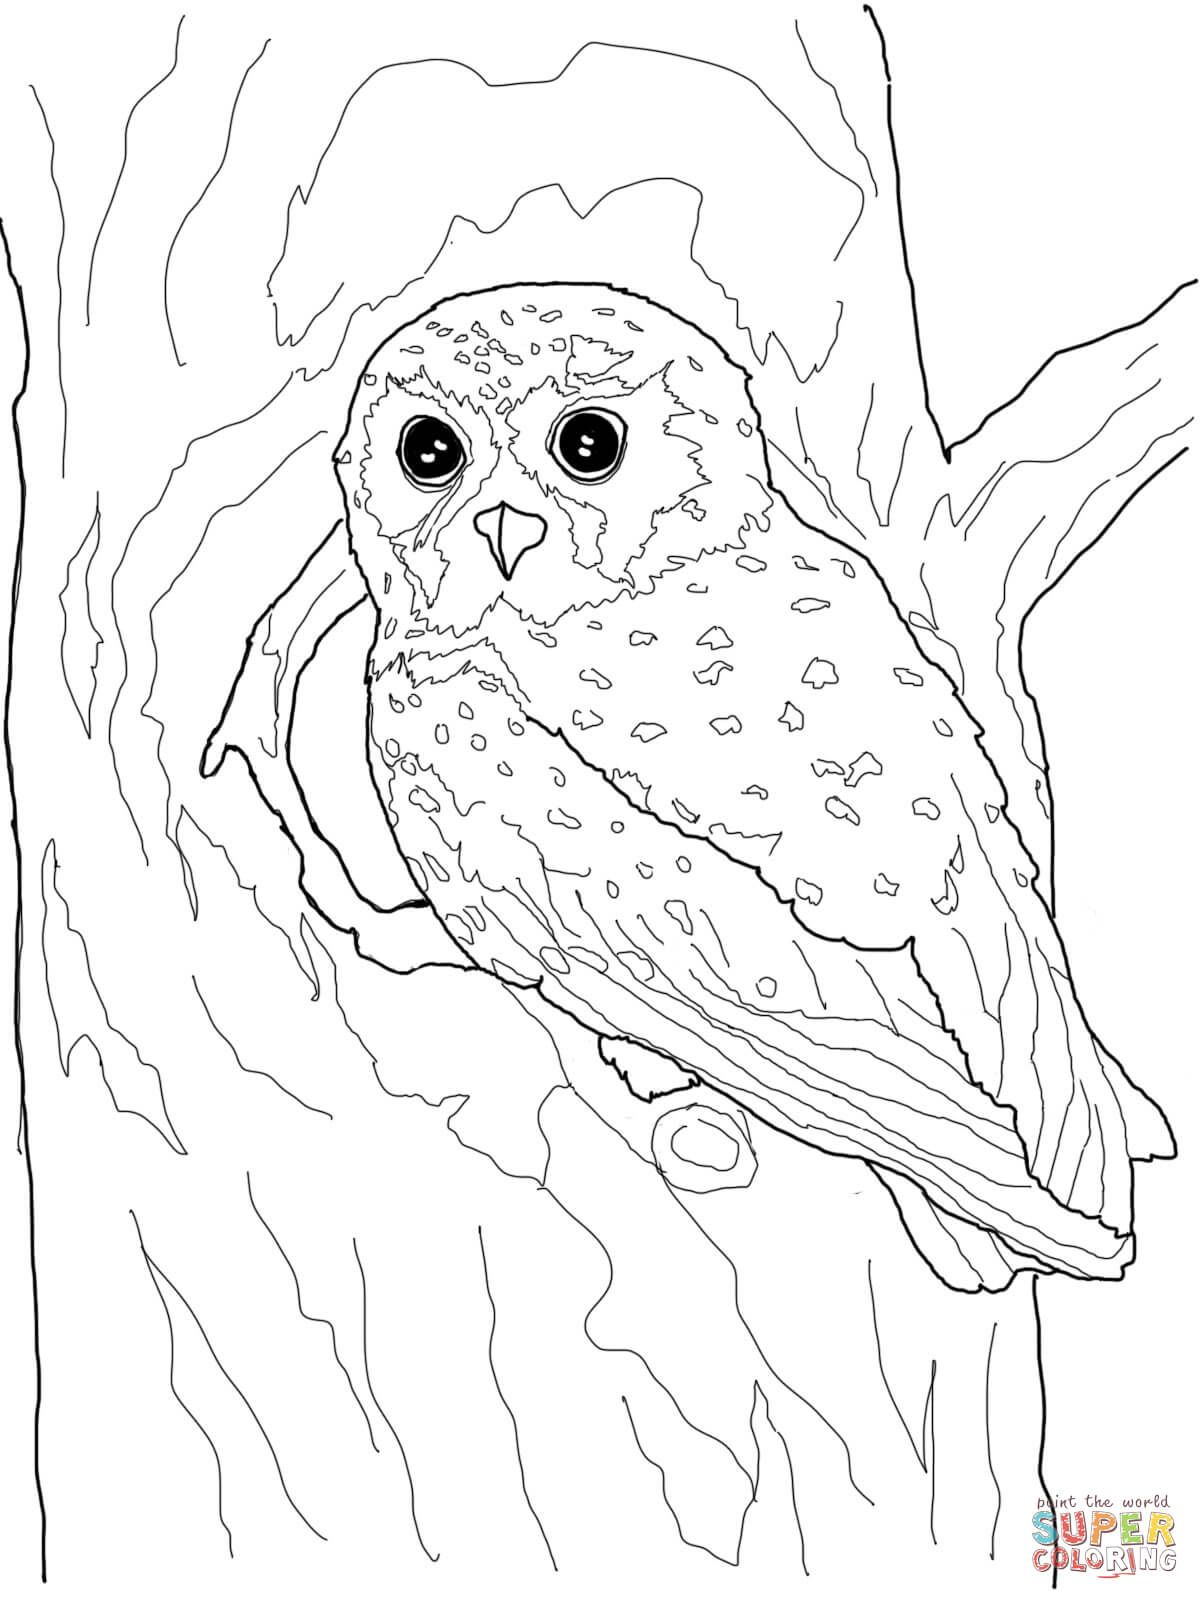 Pin by Małgorzata Kitka on Coloring pages - Owls | Pinterest | Owl ...